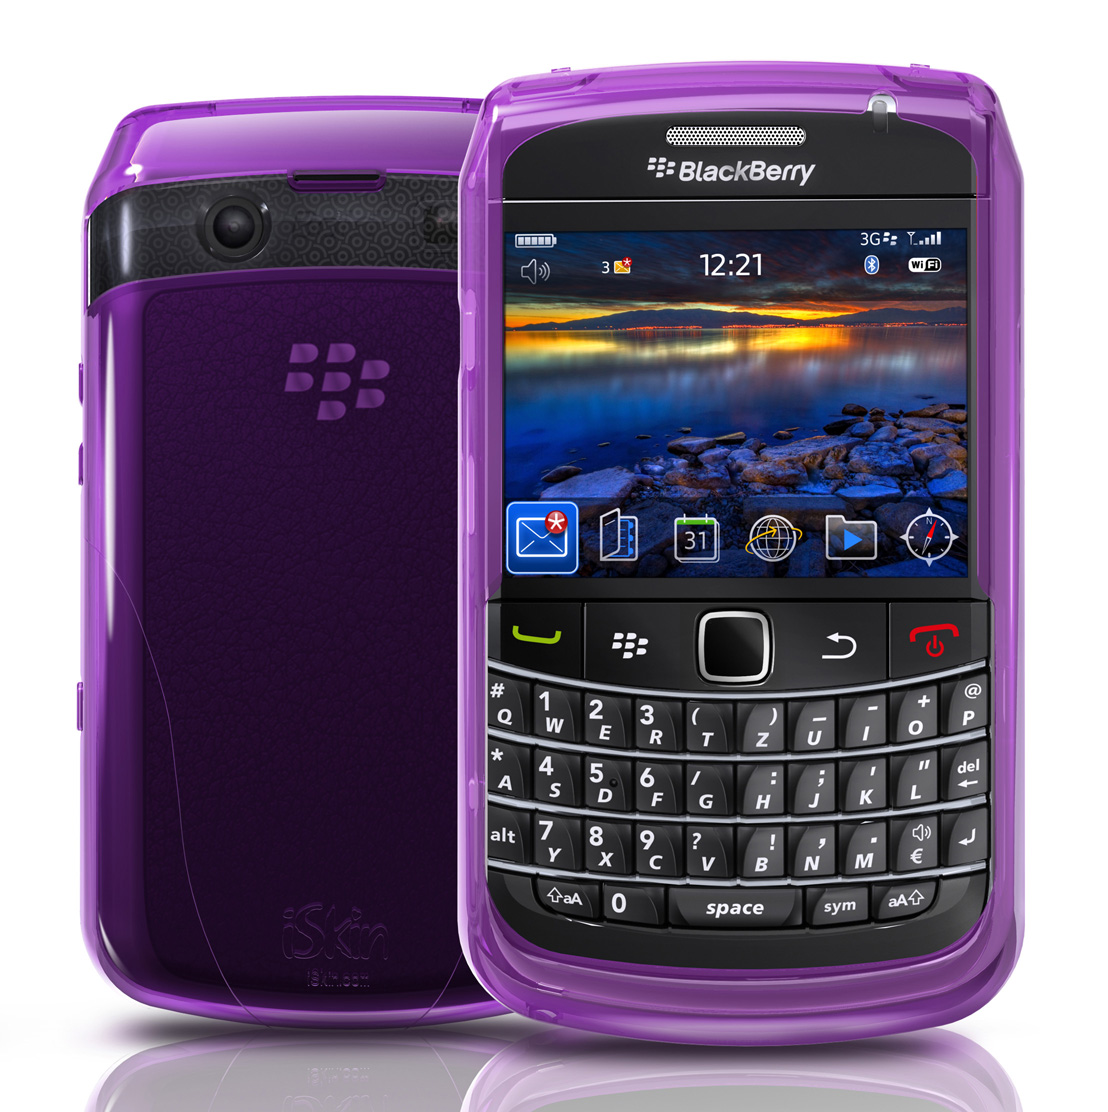 blackberry bold wallpaper-#19